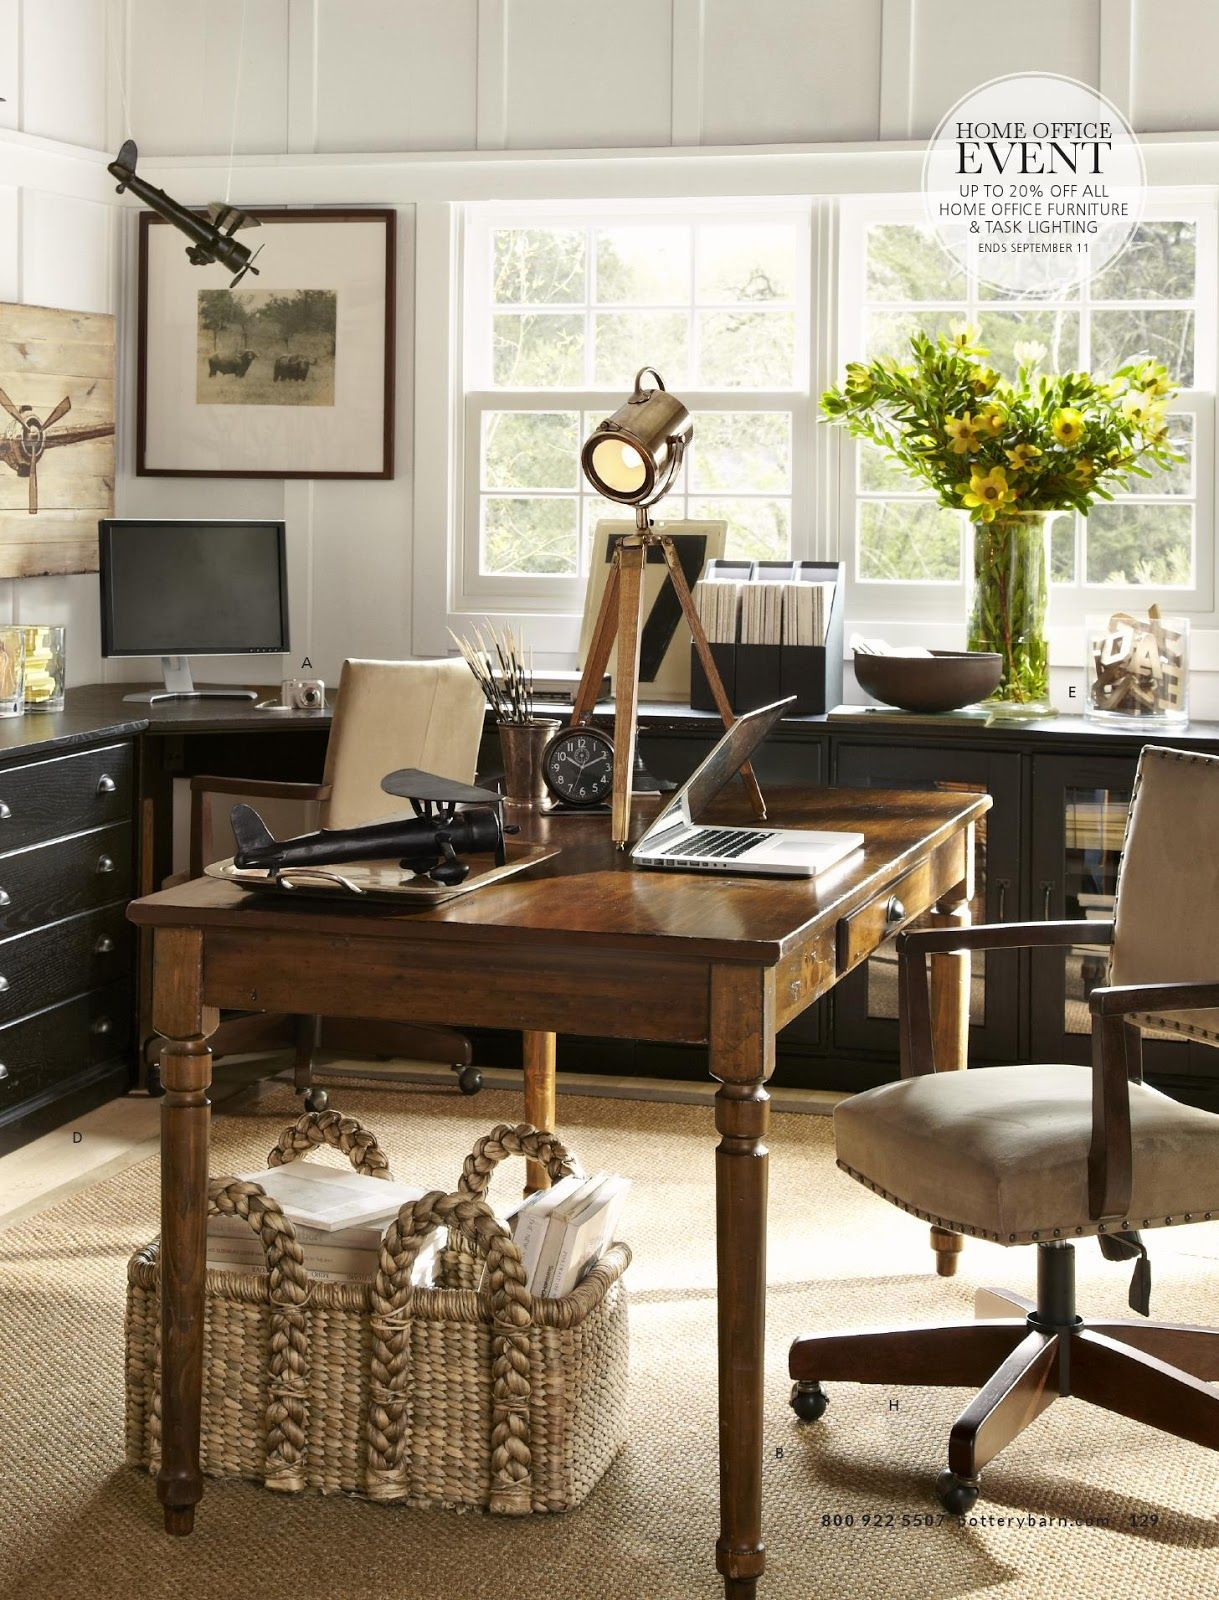 Pottery Barn home office farmhouse table as desk and wall